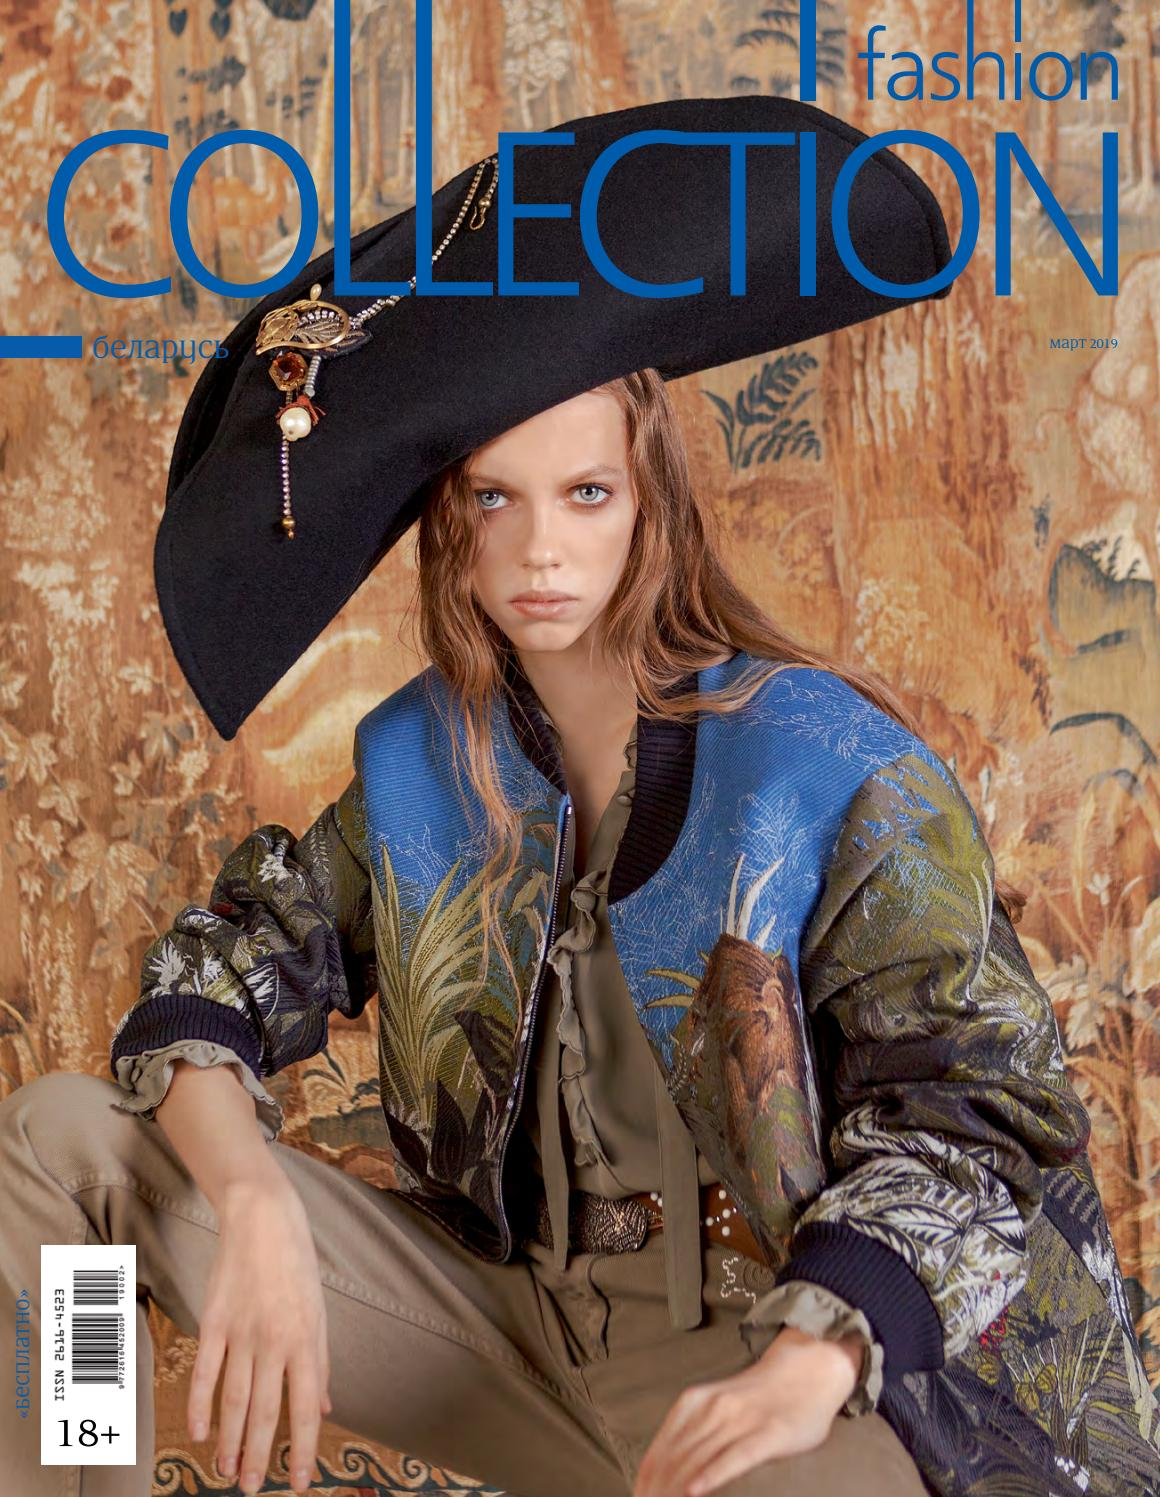 24159d04752c Fashion Сollection Belarus March 2019 by Fashion Collection Belarus - issuu